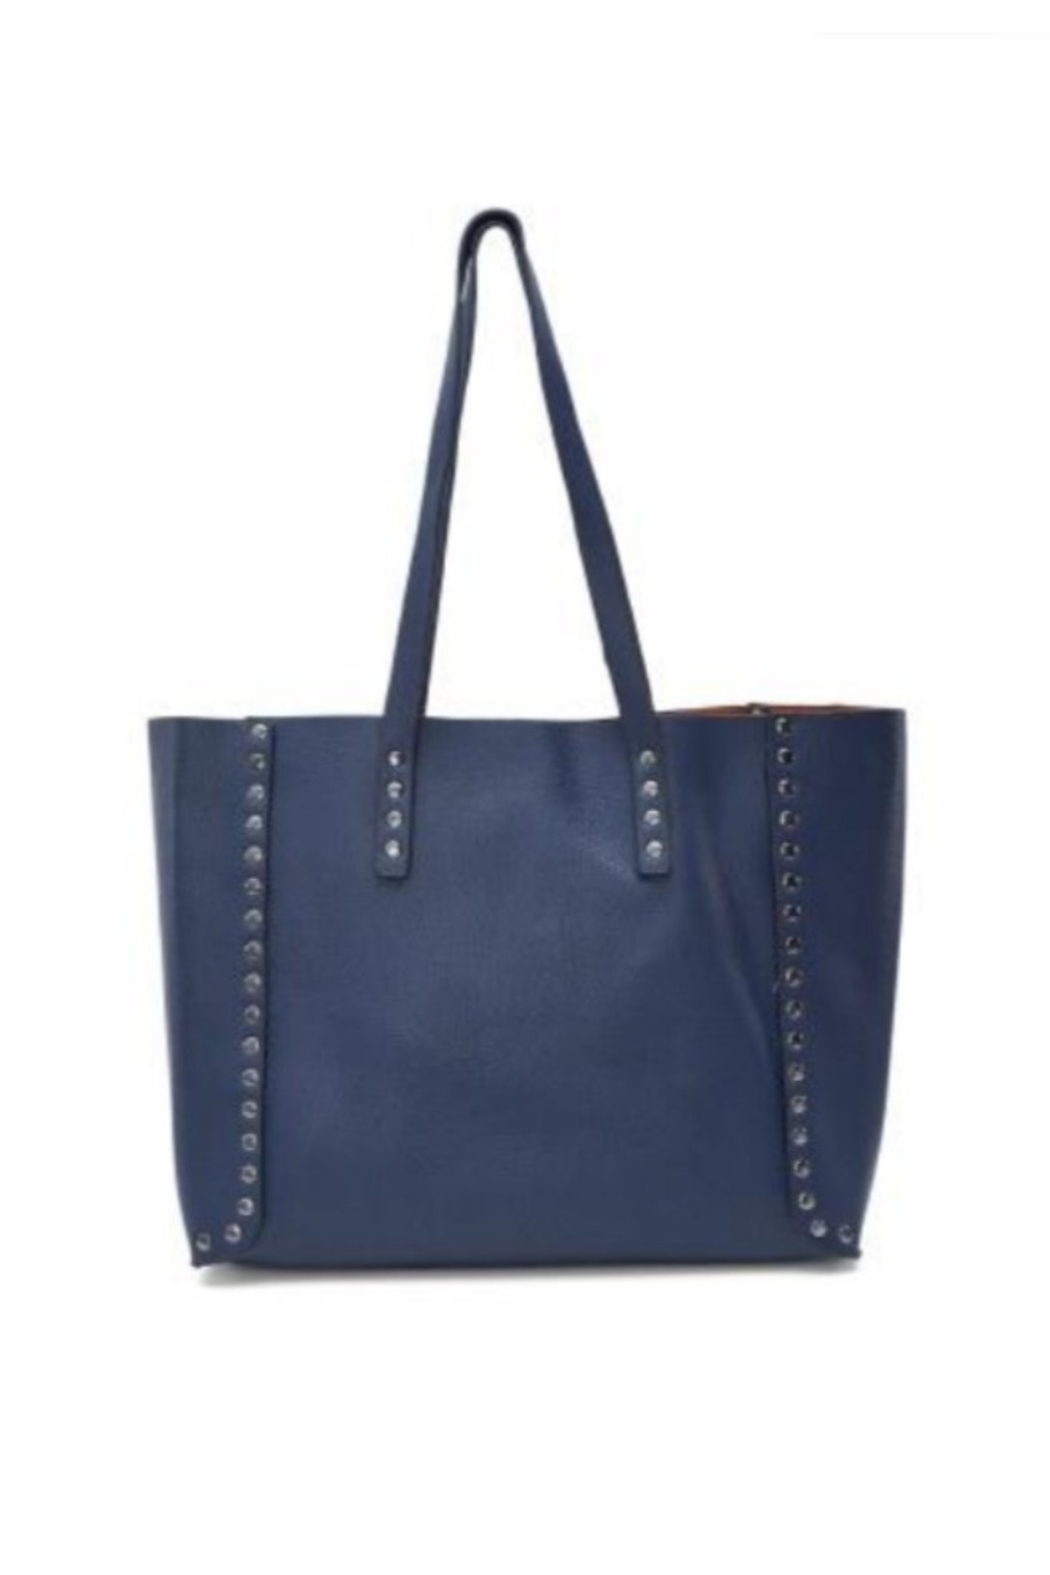 Allie & Chica Navy Studded Reversible Tote - Main Image